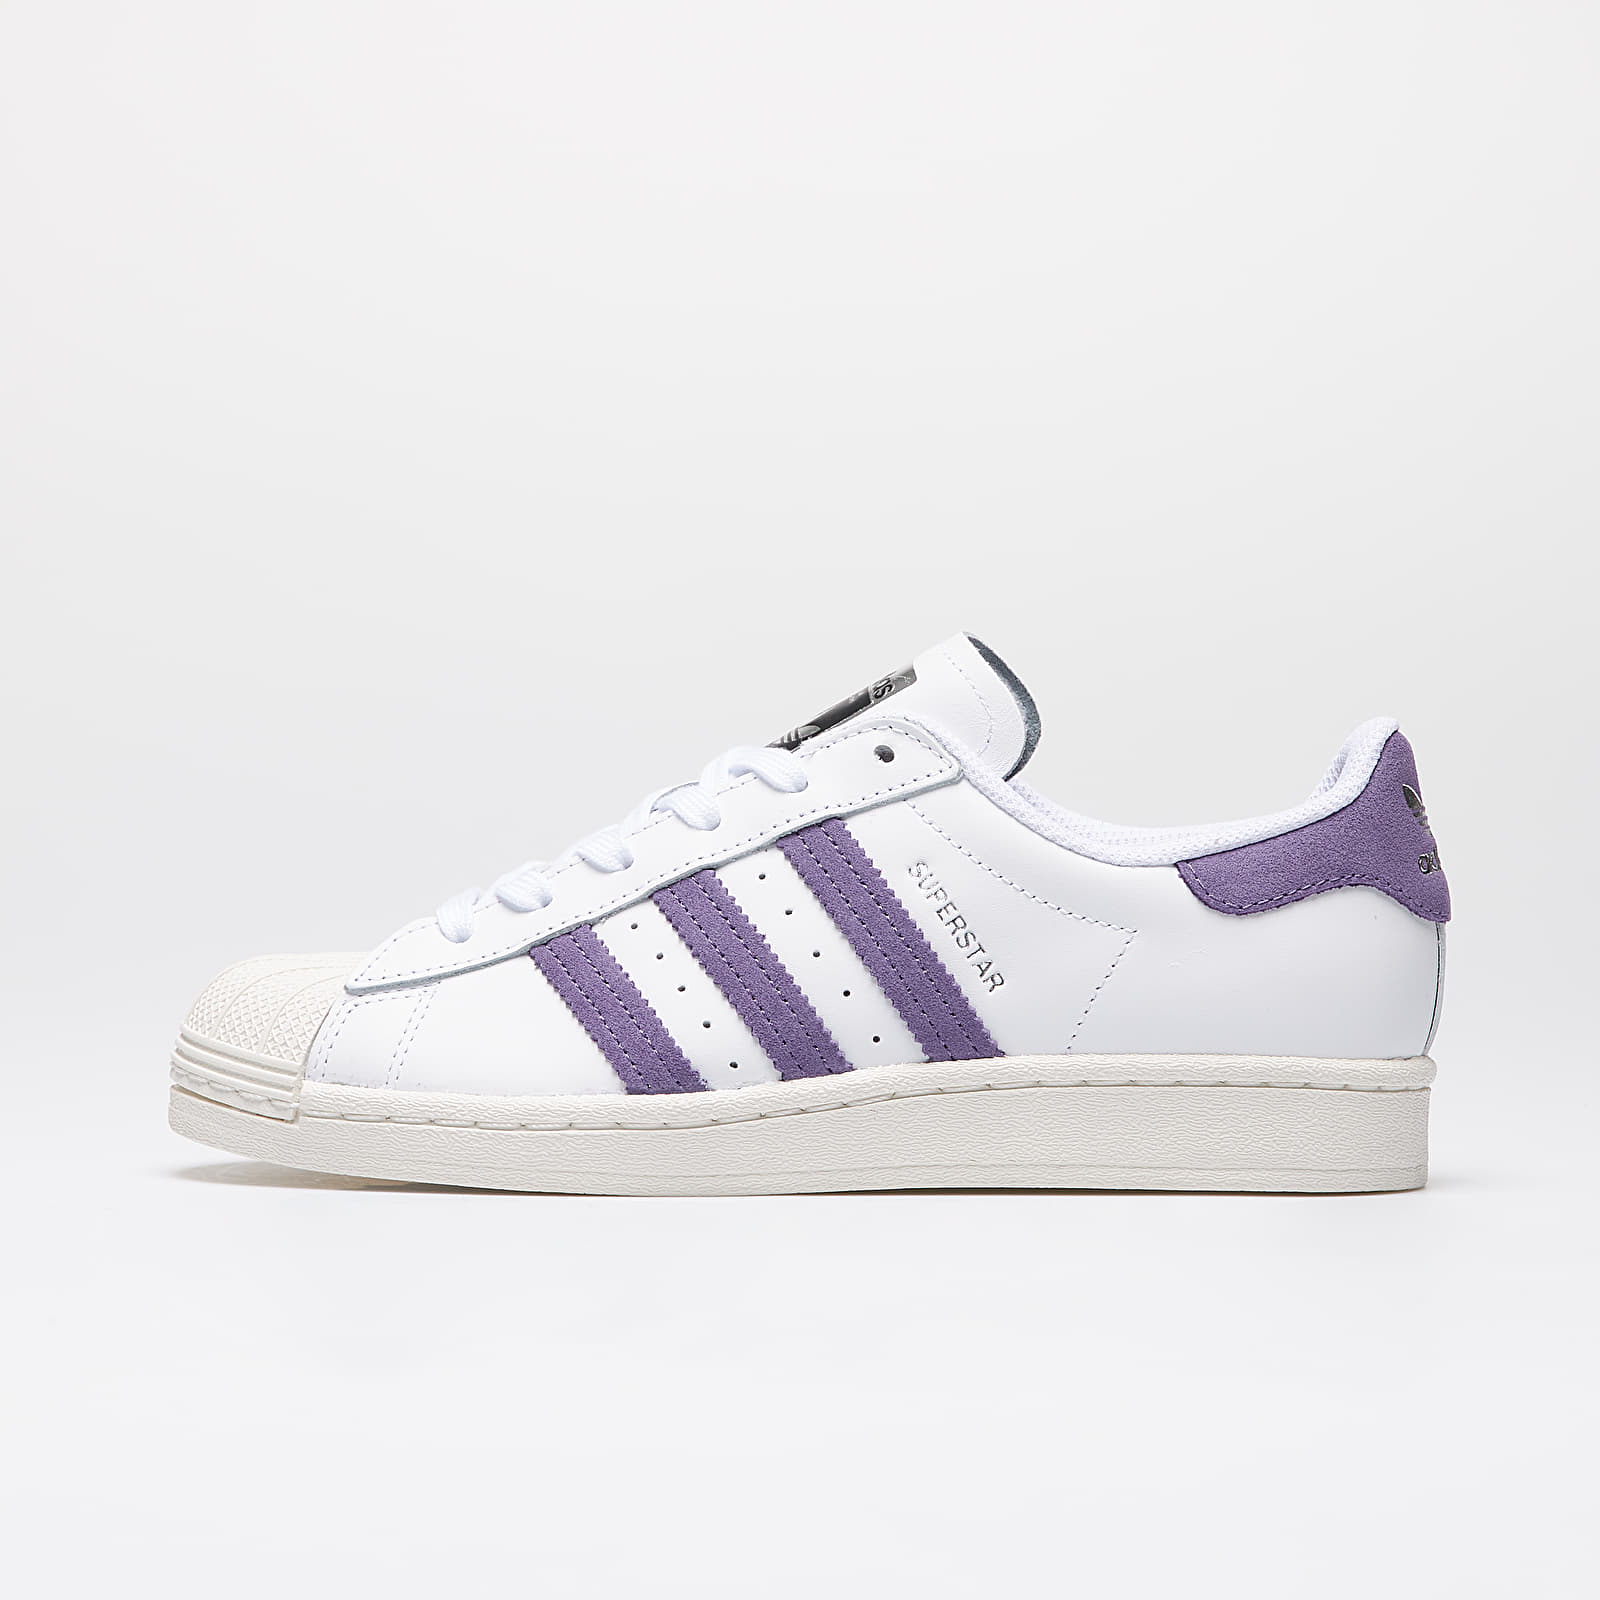 Chaussures et baskets femme adidas Superstar W Ftw White/ Tech Purple/ Off White